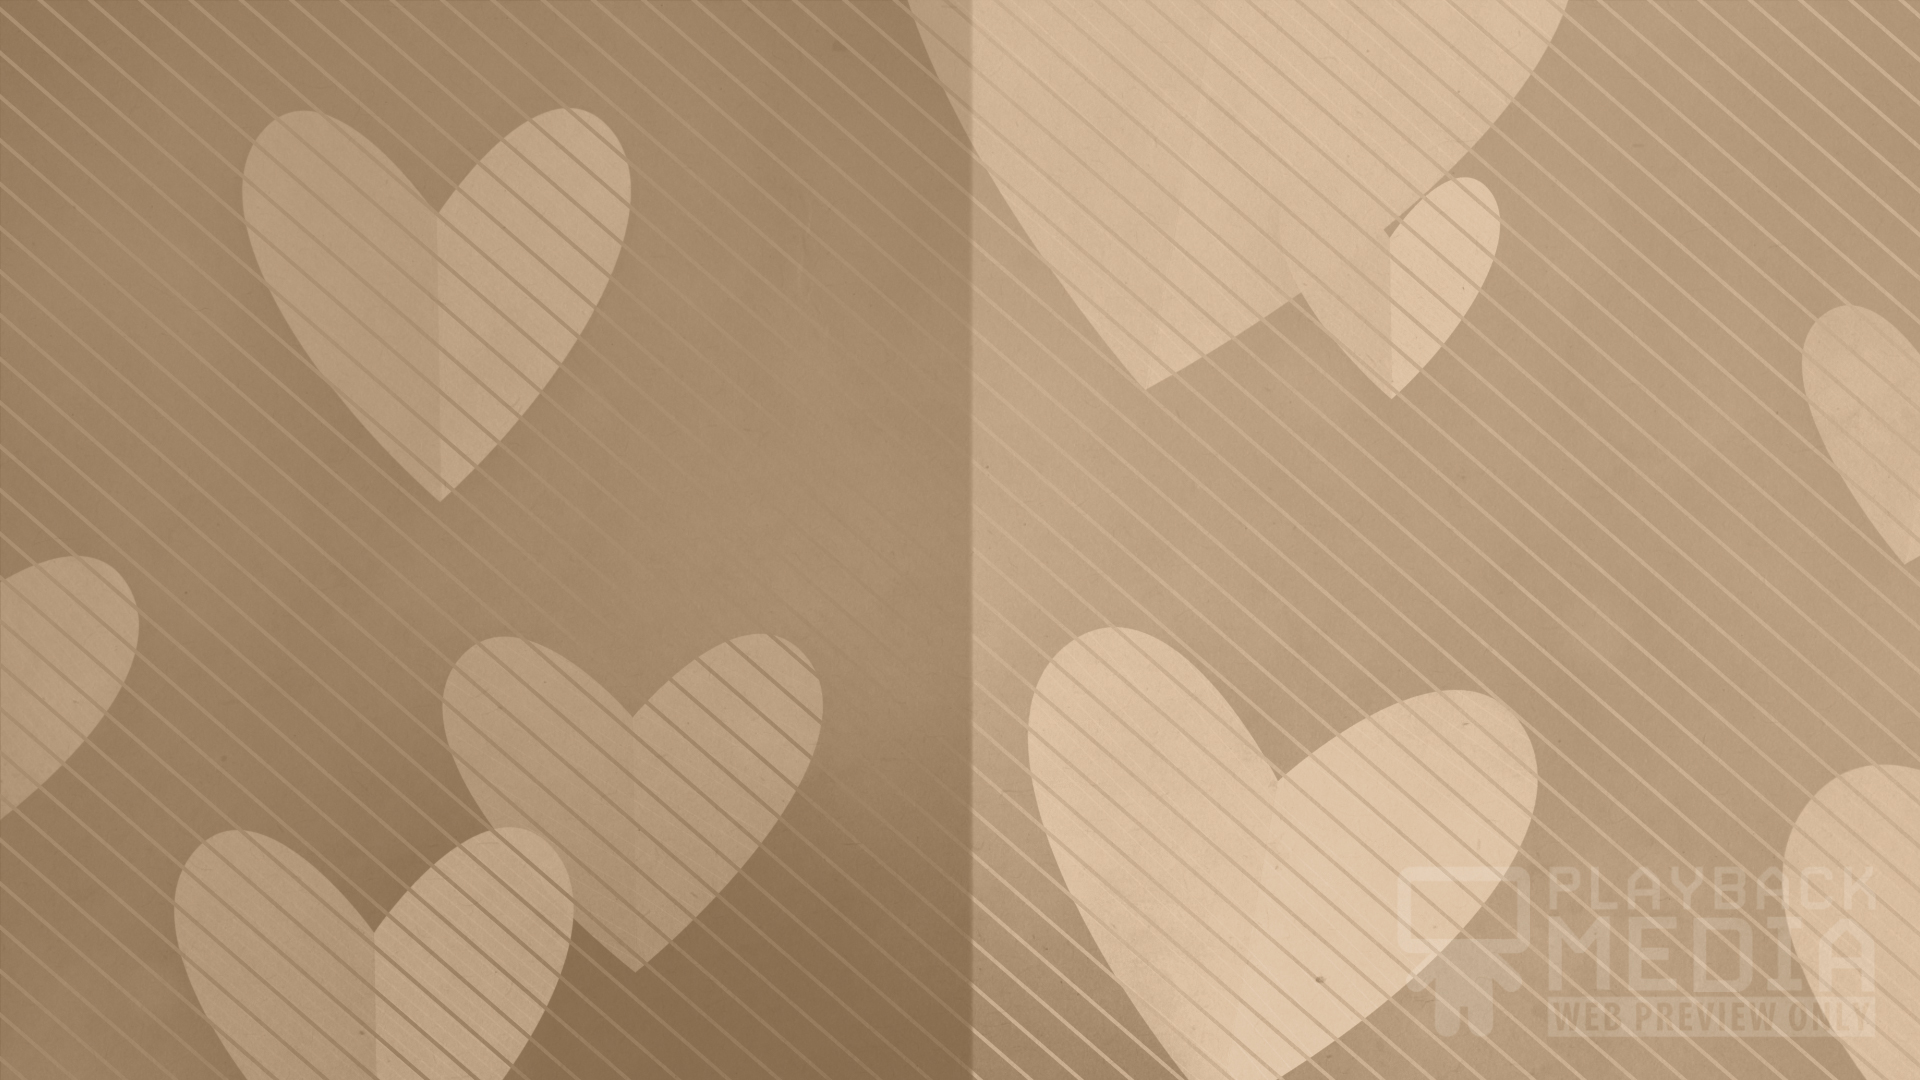 Heartfelt Love Motion 5 Image